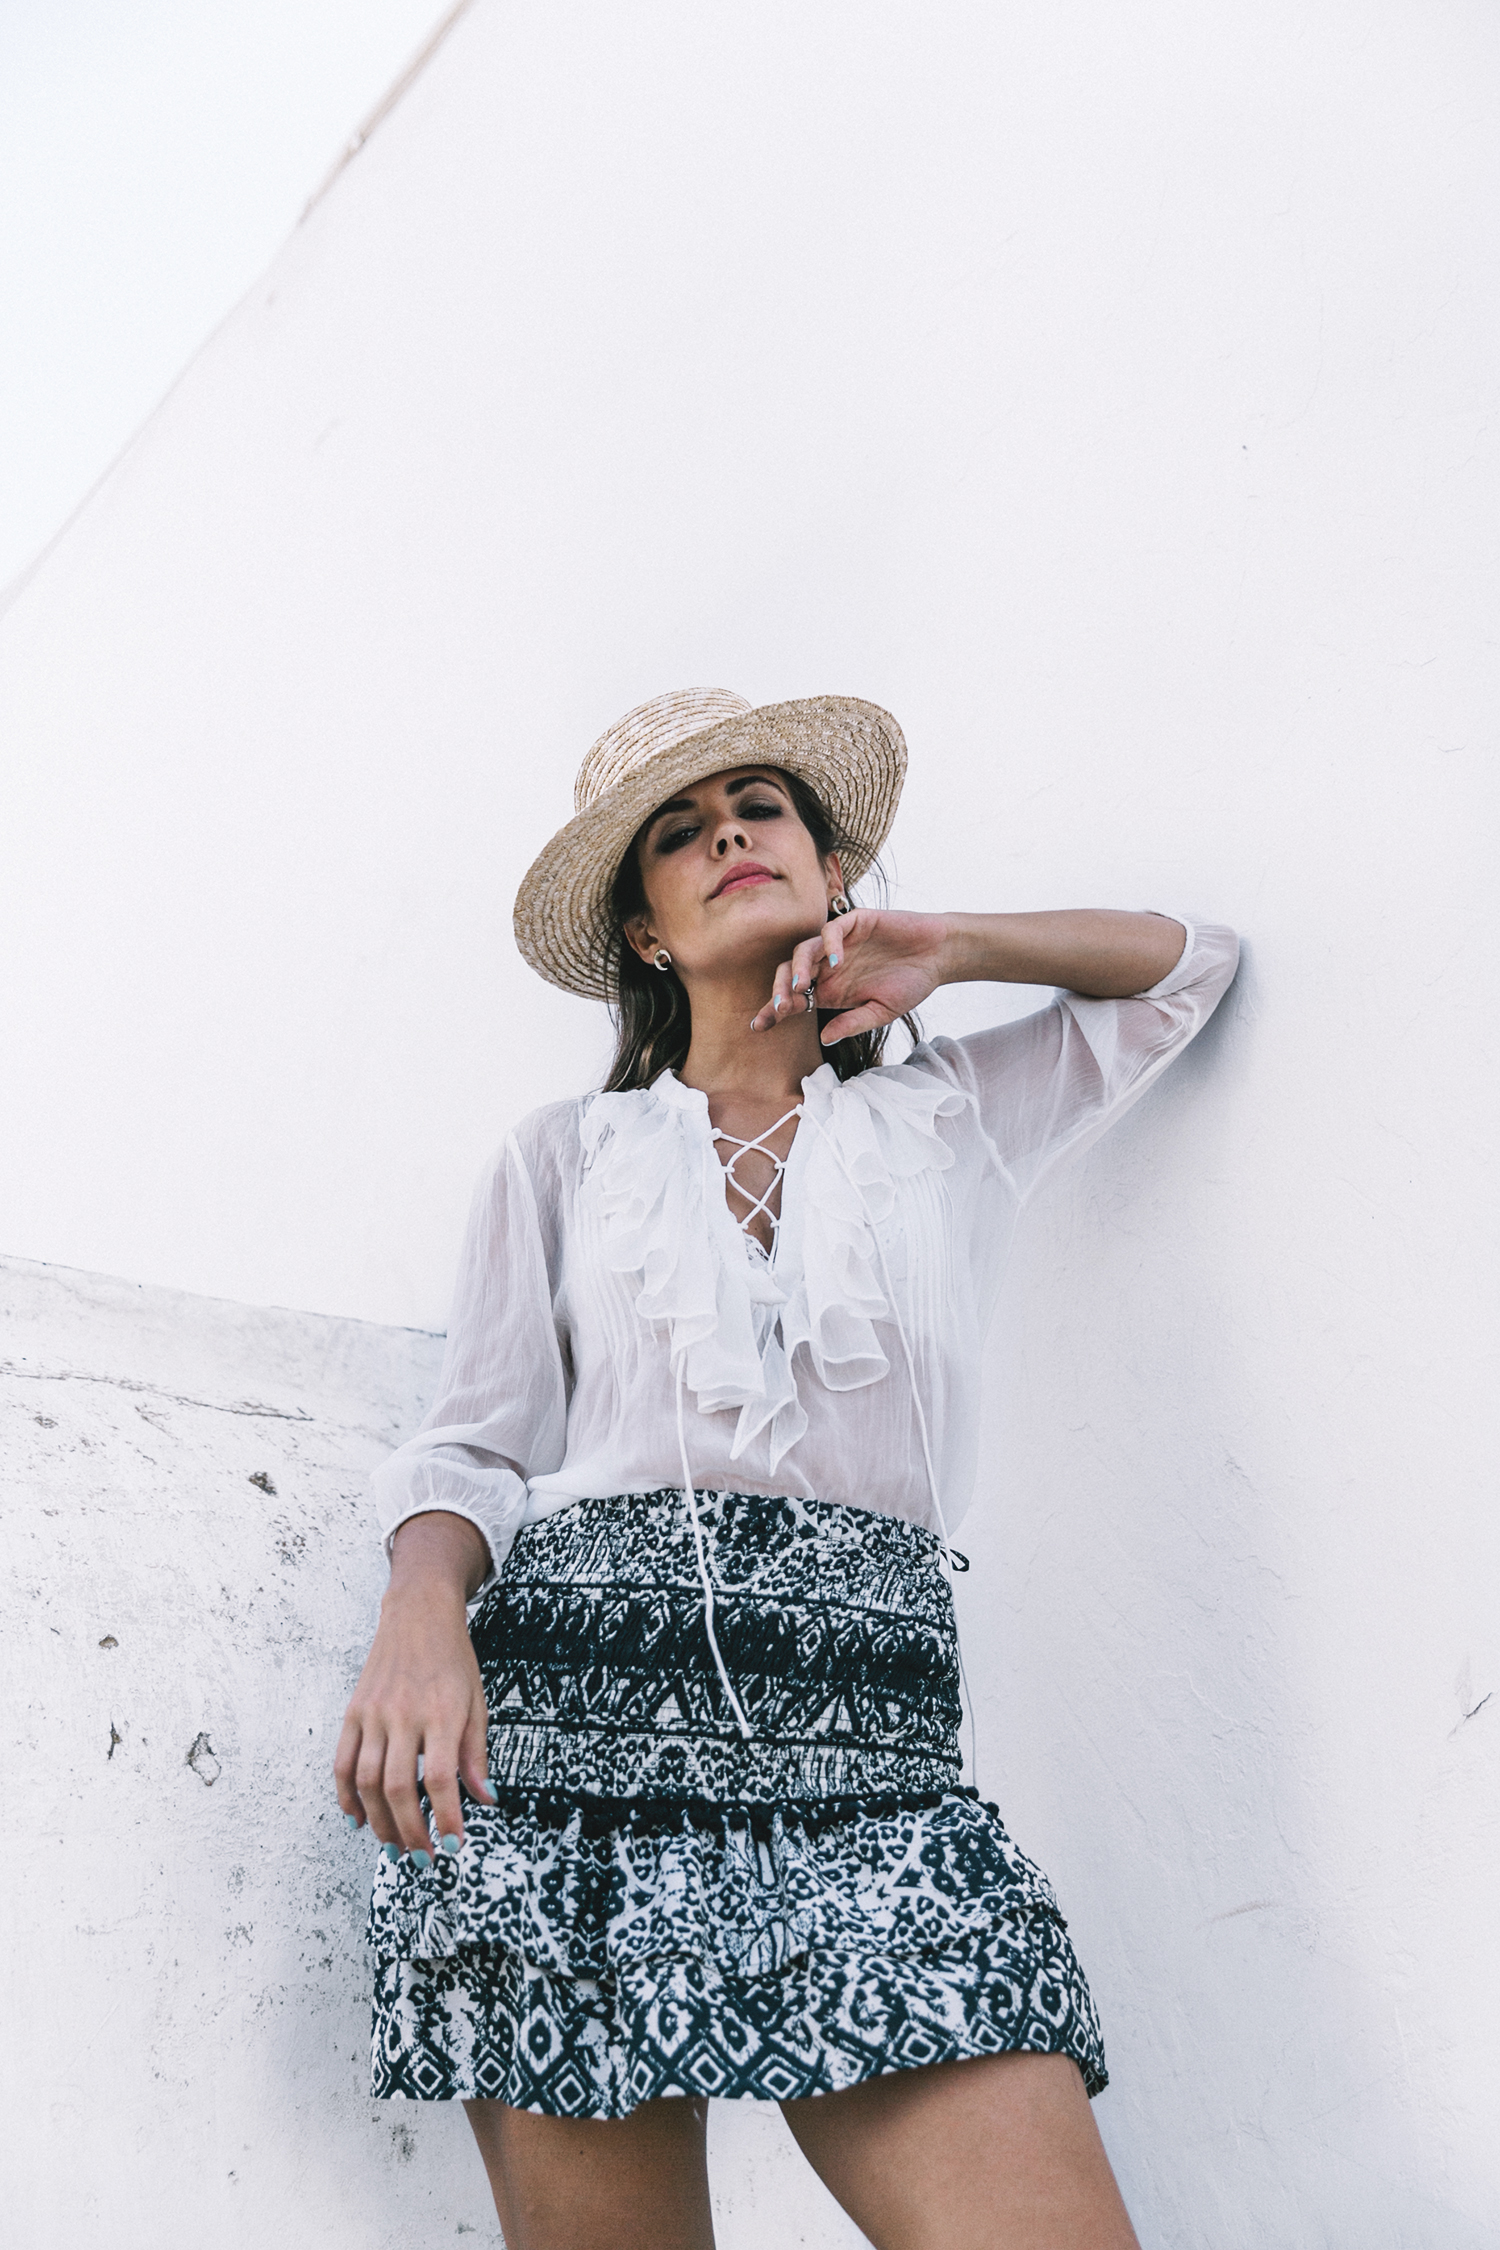 Lace_up_Blouse-Ralph_Lauren-Soludos_Espadrilles-Soludos_Escapes-Skirt-Straw_Hat-Canotier-Lack_Of_Color-Street_Style-Mykonos-Greece-Collage_Vintage-49